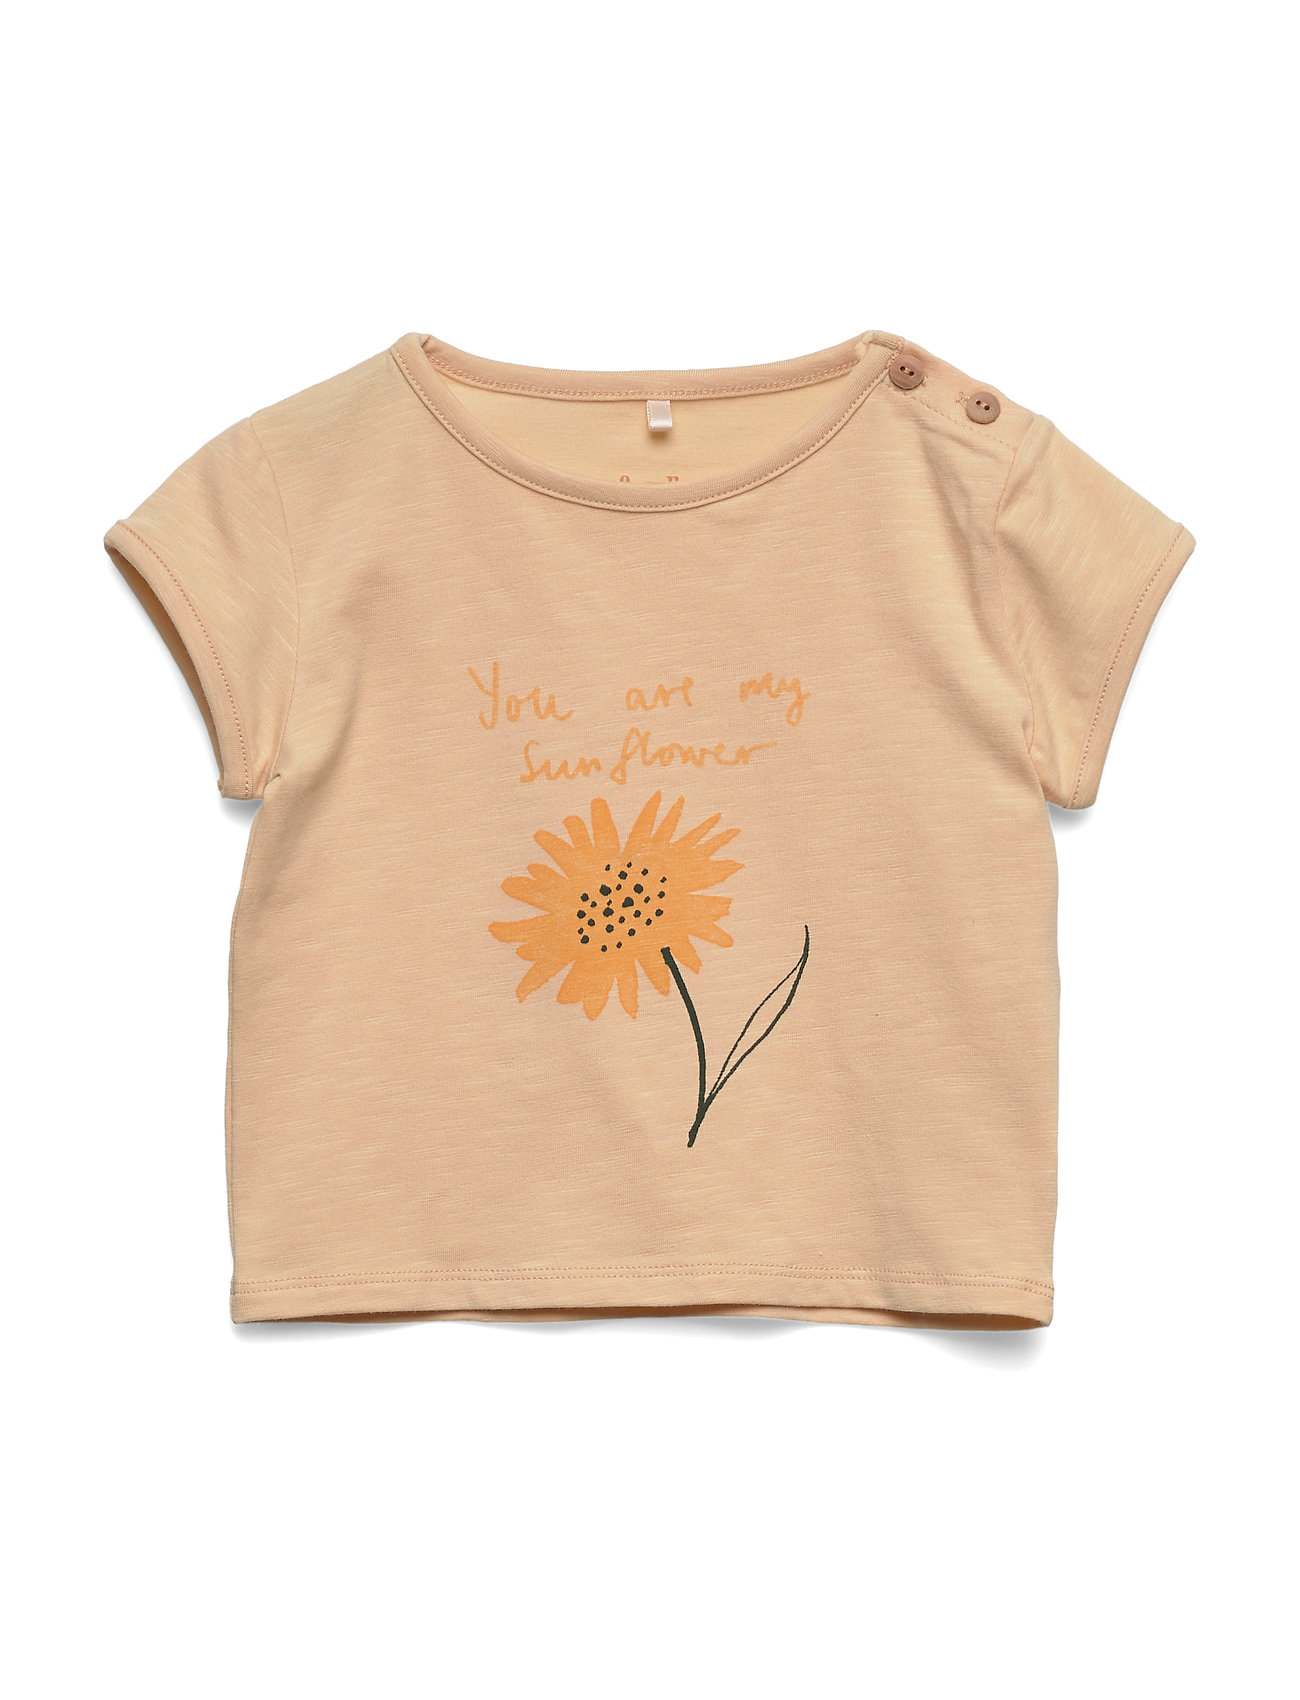 Soft Gallery Nelly T-shirt - WINTER WHEAT, SUNNY